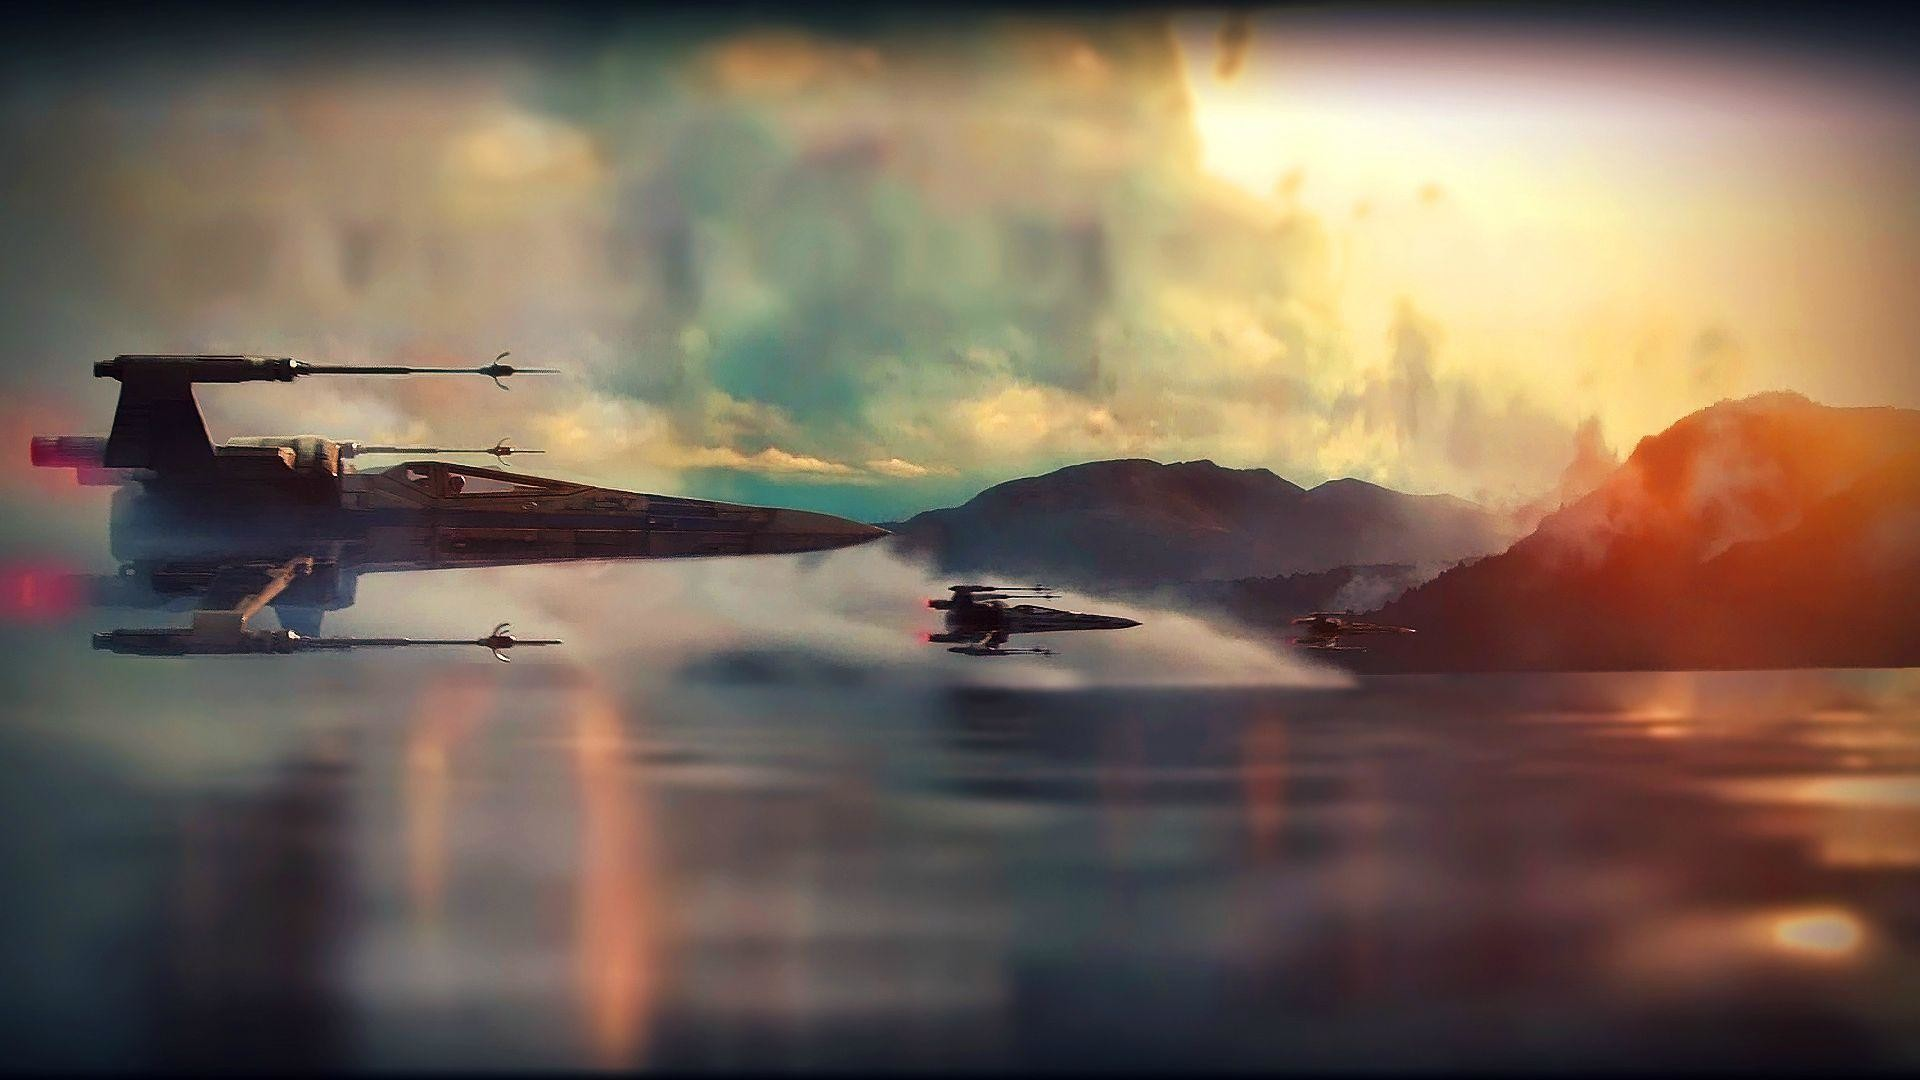 1920x1080 Star Wars Ep VII: The Force Awakens Teaser X-Wing Super Saturated .